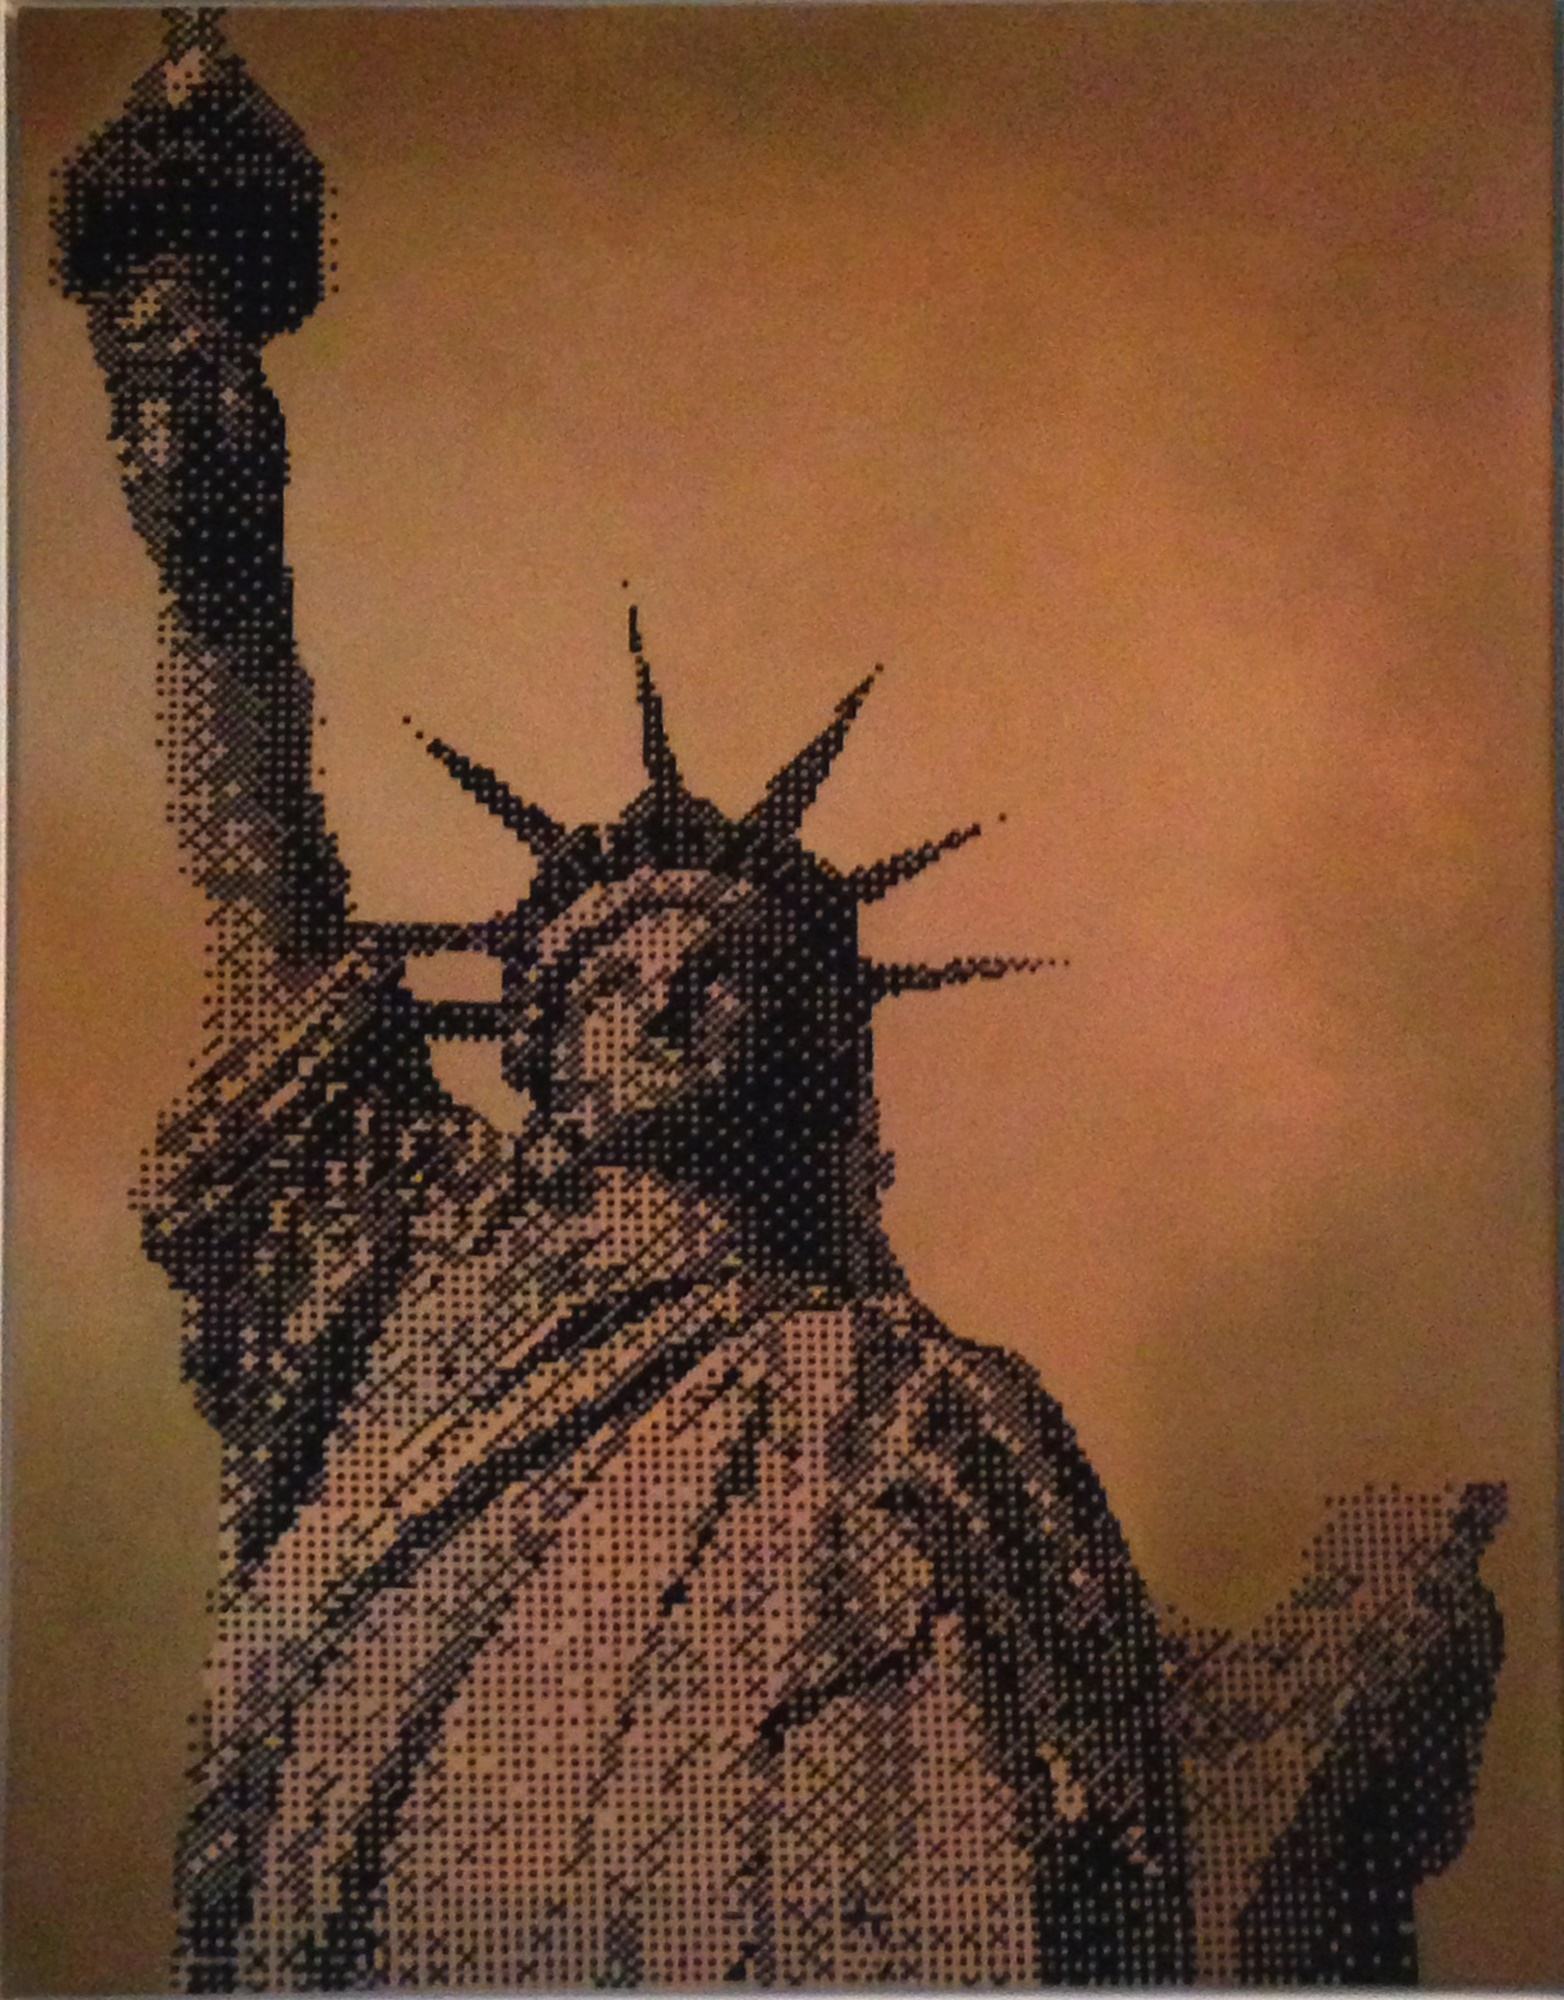 Untitled (Statue of Liberty), 2013